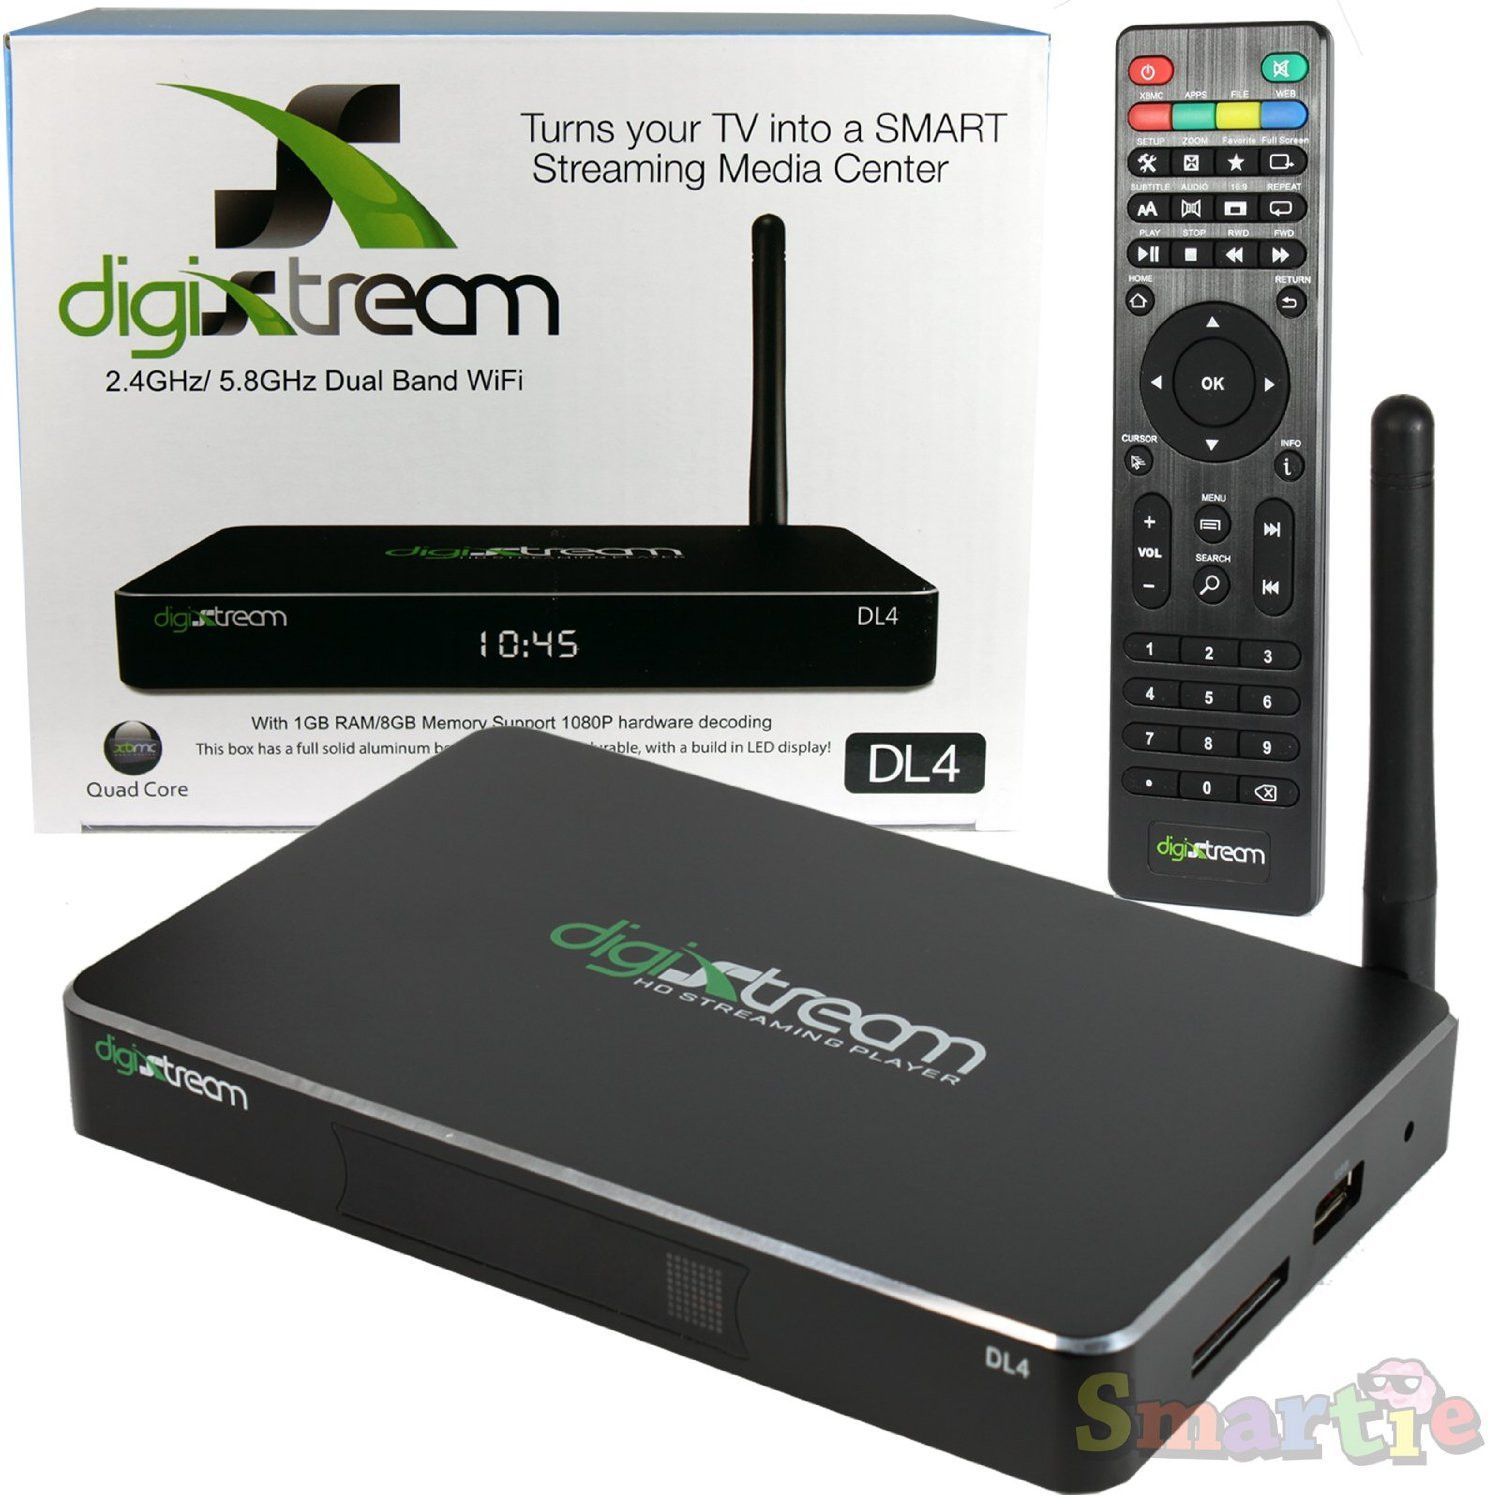 DIGISTREAM SMART TV (say goodbye to cable) Quad, Dual